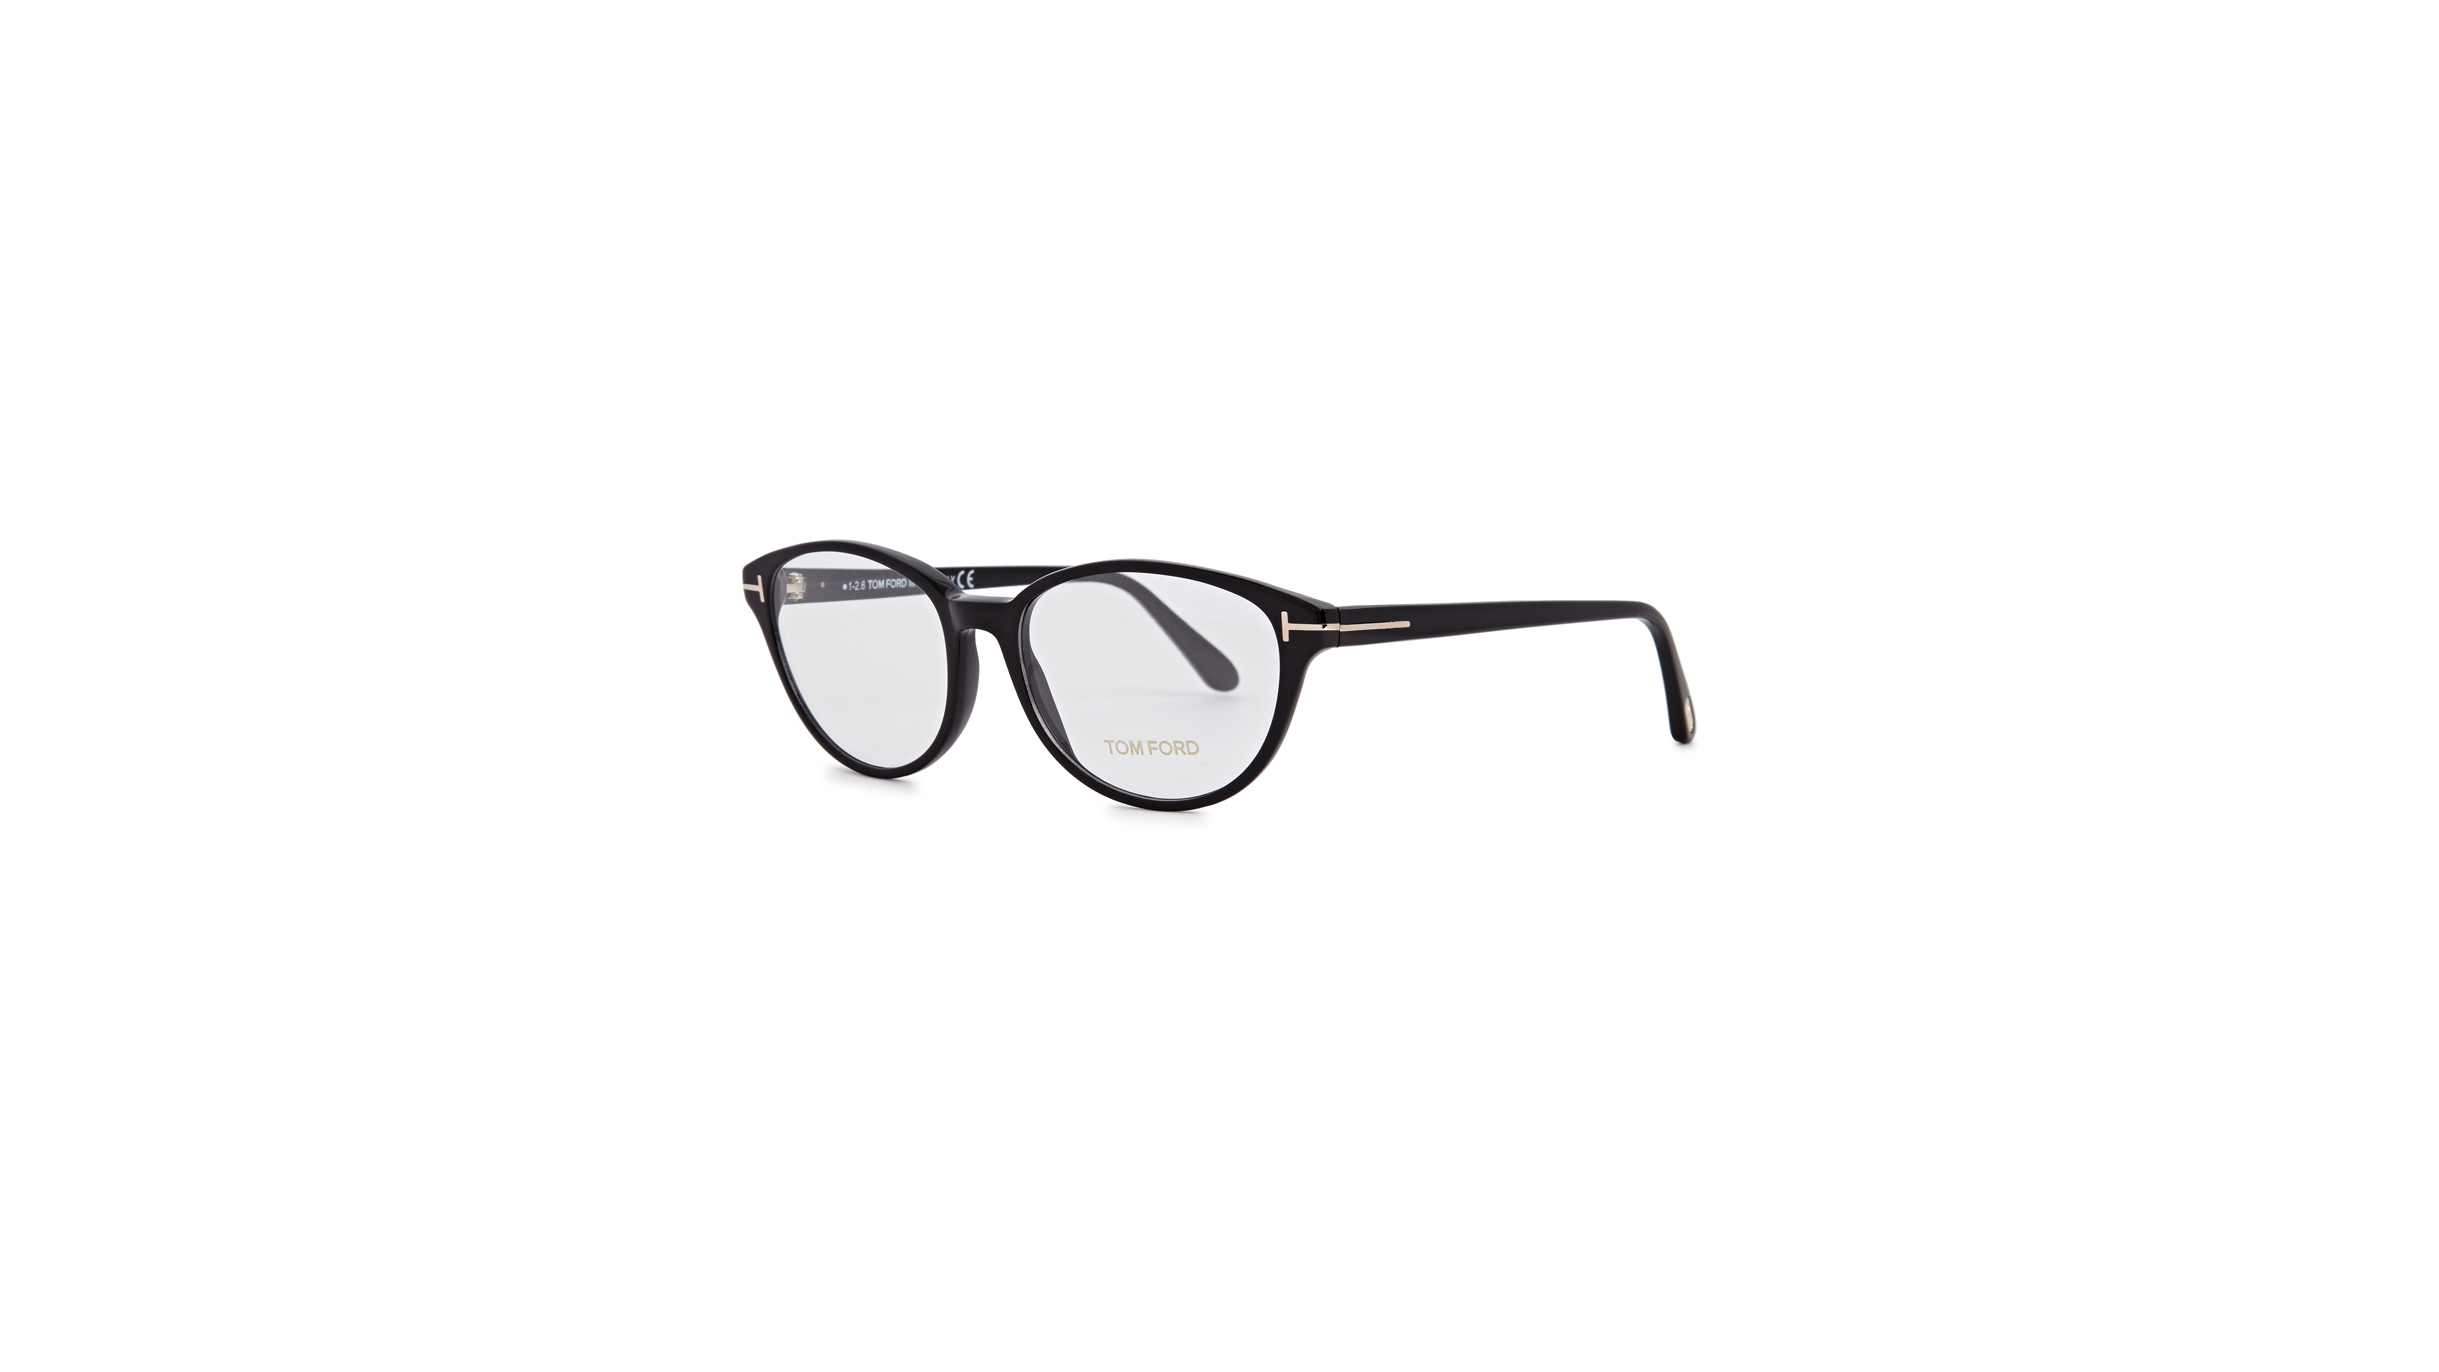 eccf25670a2 Tom Ford Black oval-frame optical glasses - Harvey Nichols